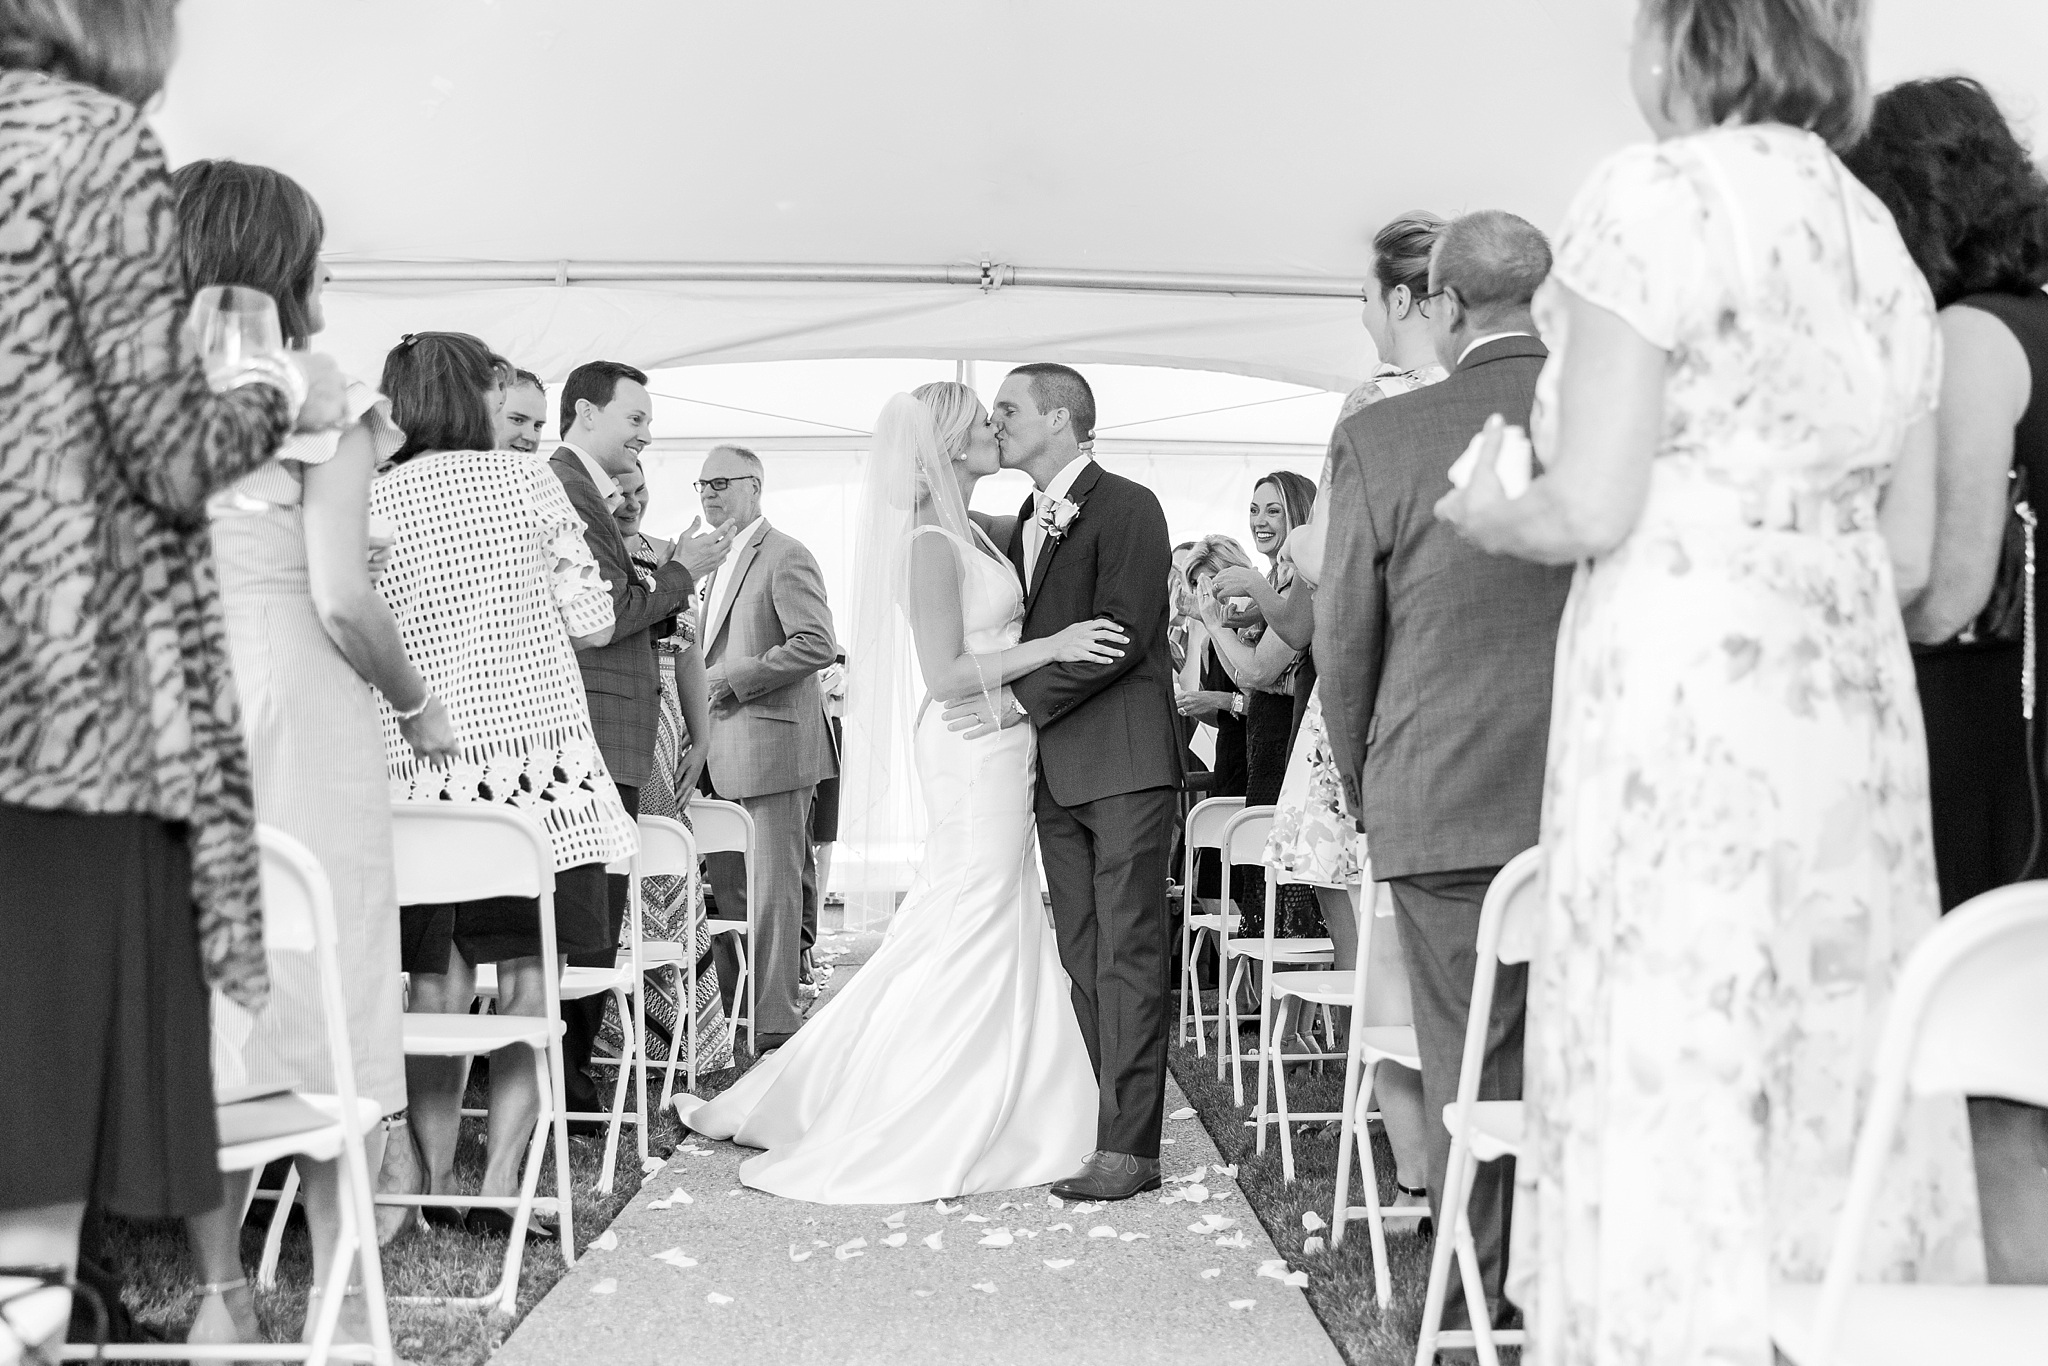 casually-chic-modern-wedding-photos-at-the-chapman-house-in-rochester-michigan-by-courtney-carolyn-photography_0044.jpg